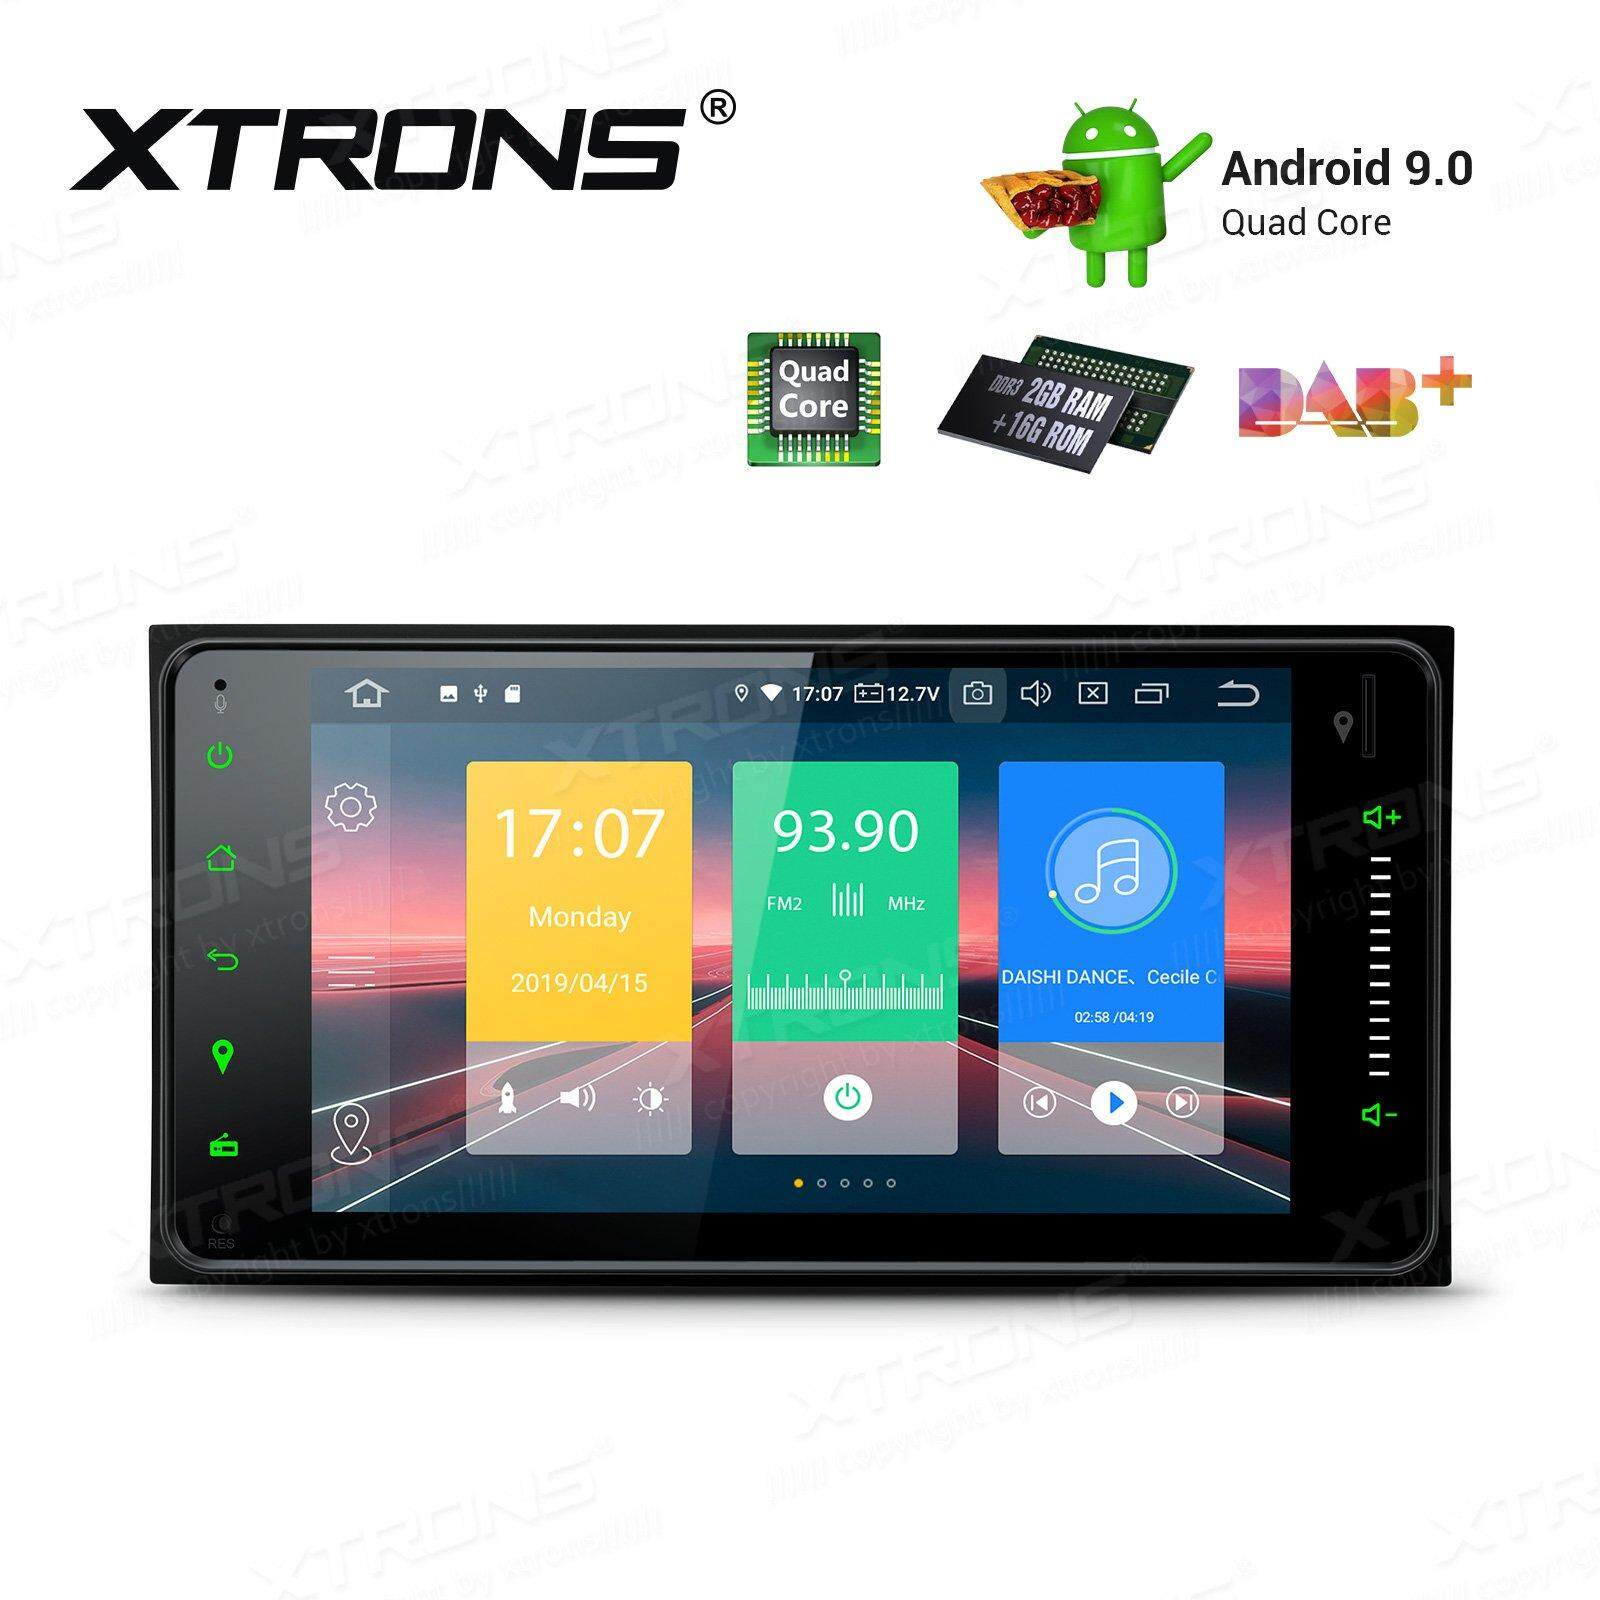 XTRONS Android 9.0 Car Stereo Double DIN GPS Navigation with 7 Inch Touch Screen In Dash Head Unit Universal Support BT WIFI Car Auto Play DVR TPMS OBD02